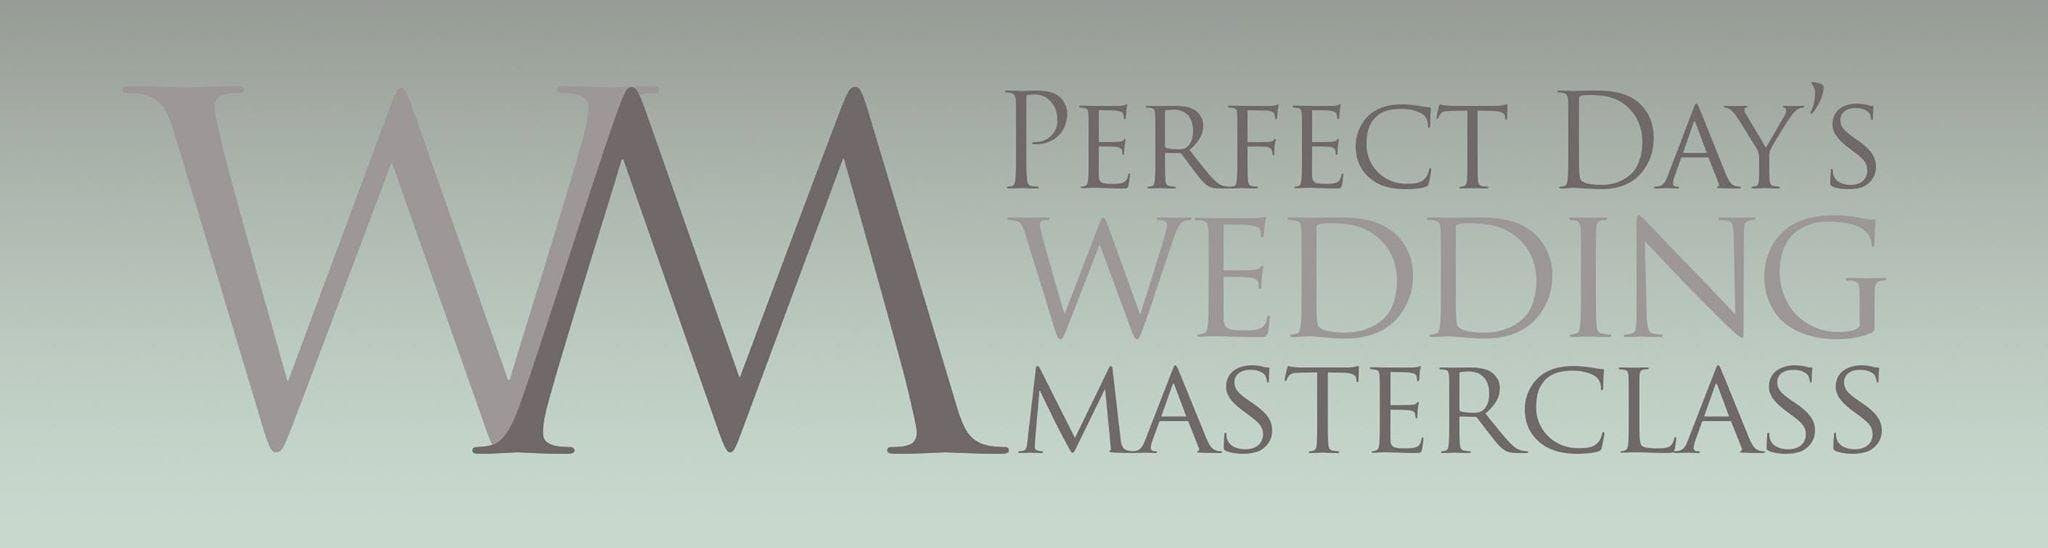 Wedding Masterclass At Perfect Day